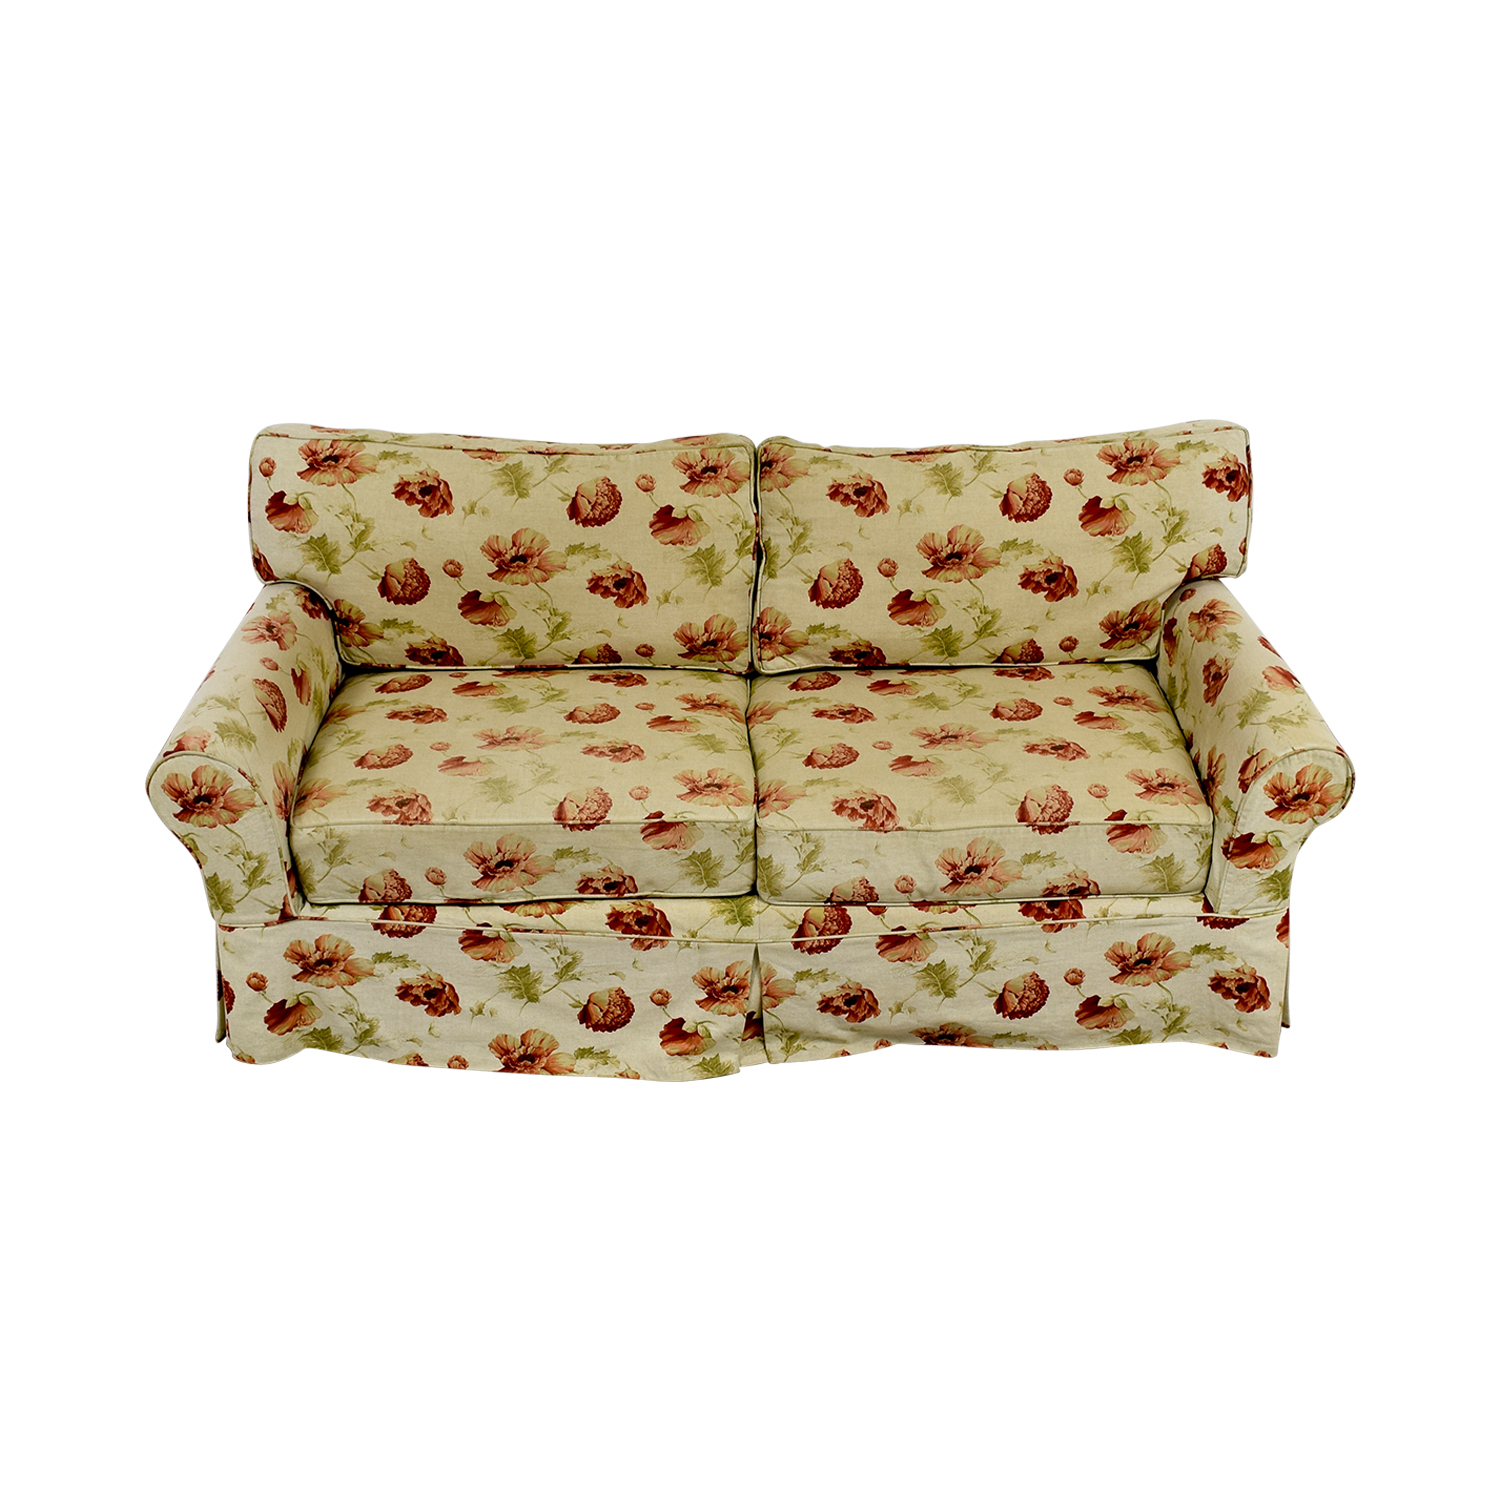 Crate & Barrel Crate & Barrel Slip Covered Floral Sofa nj